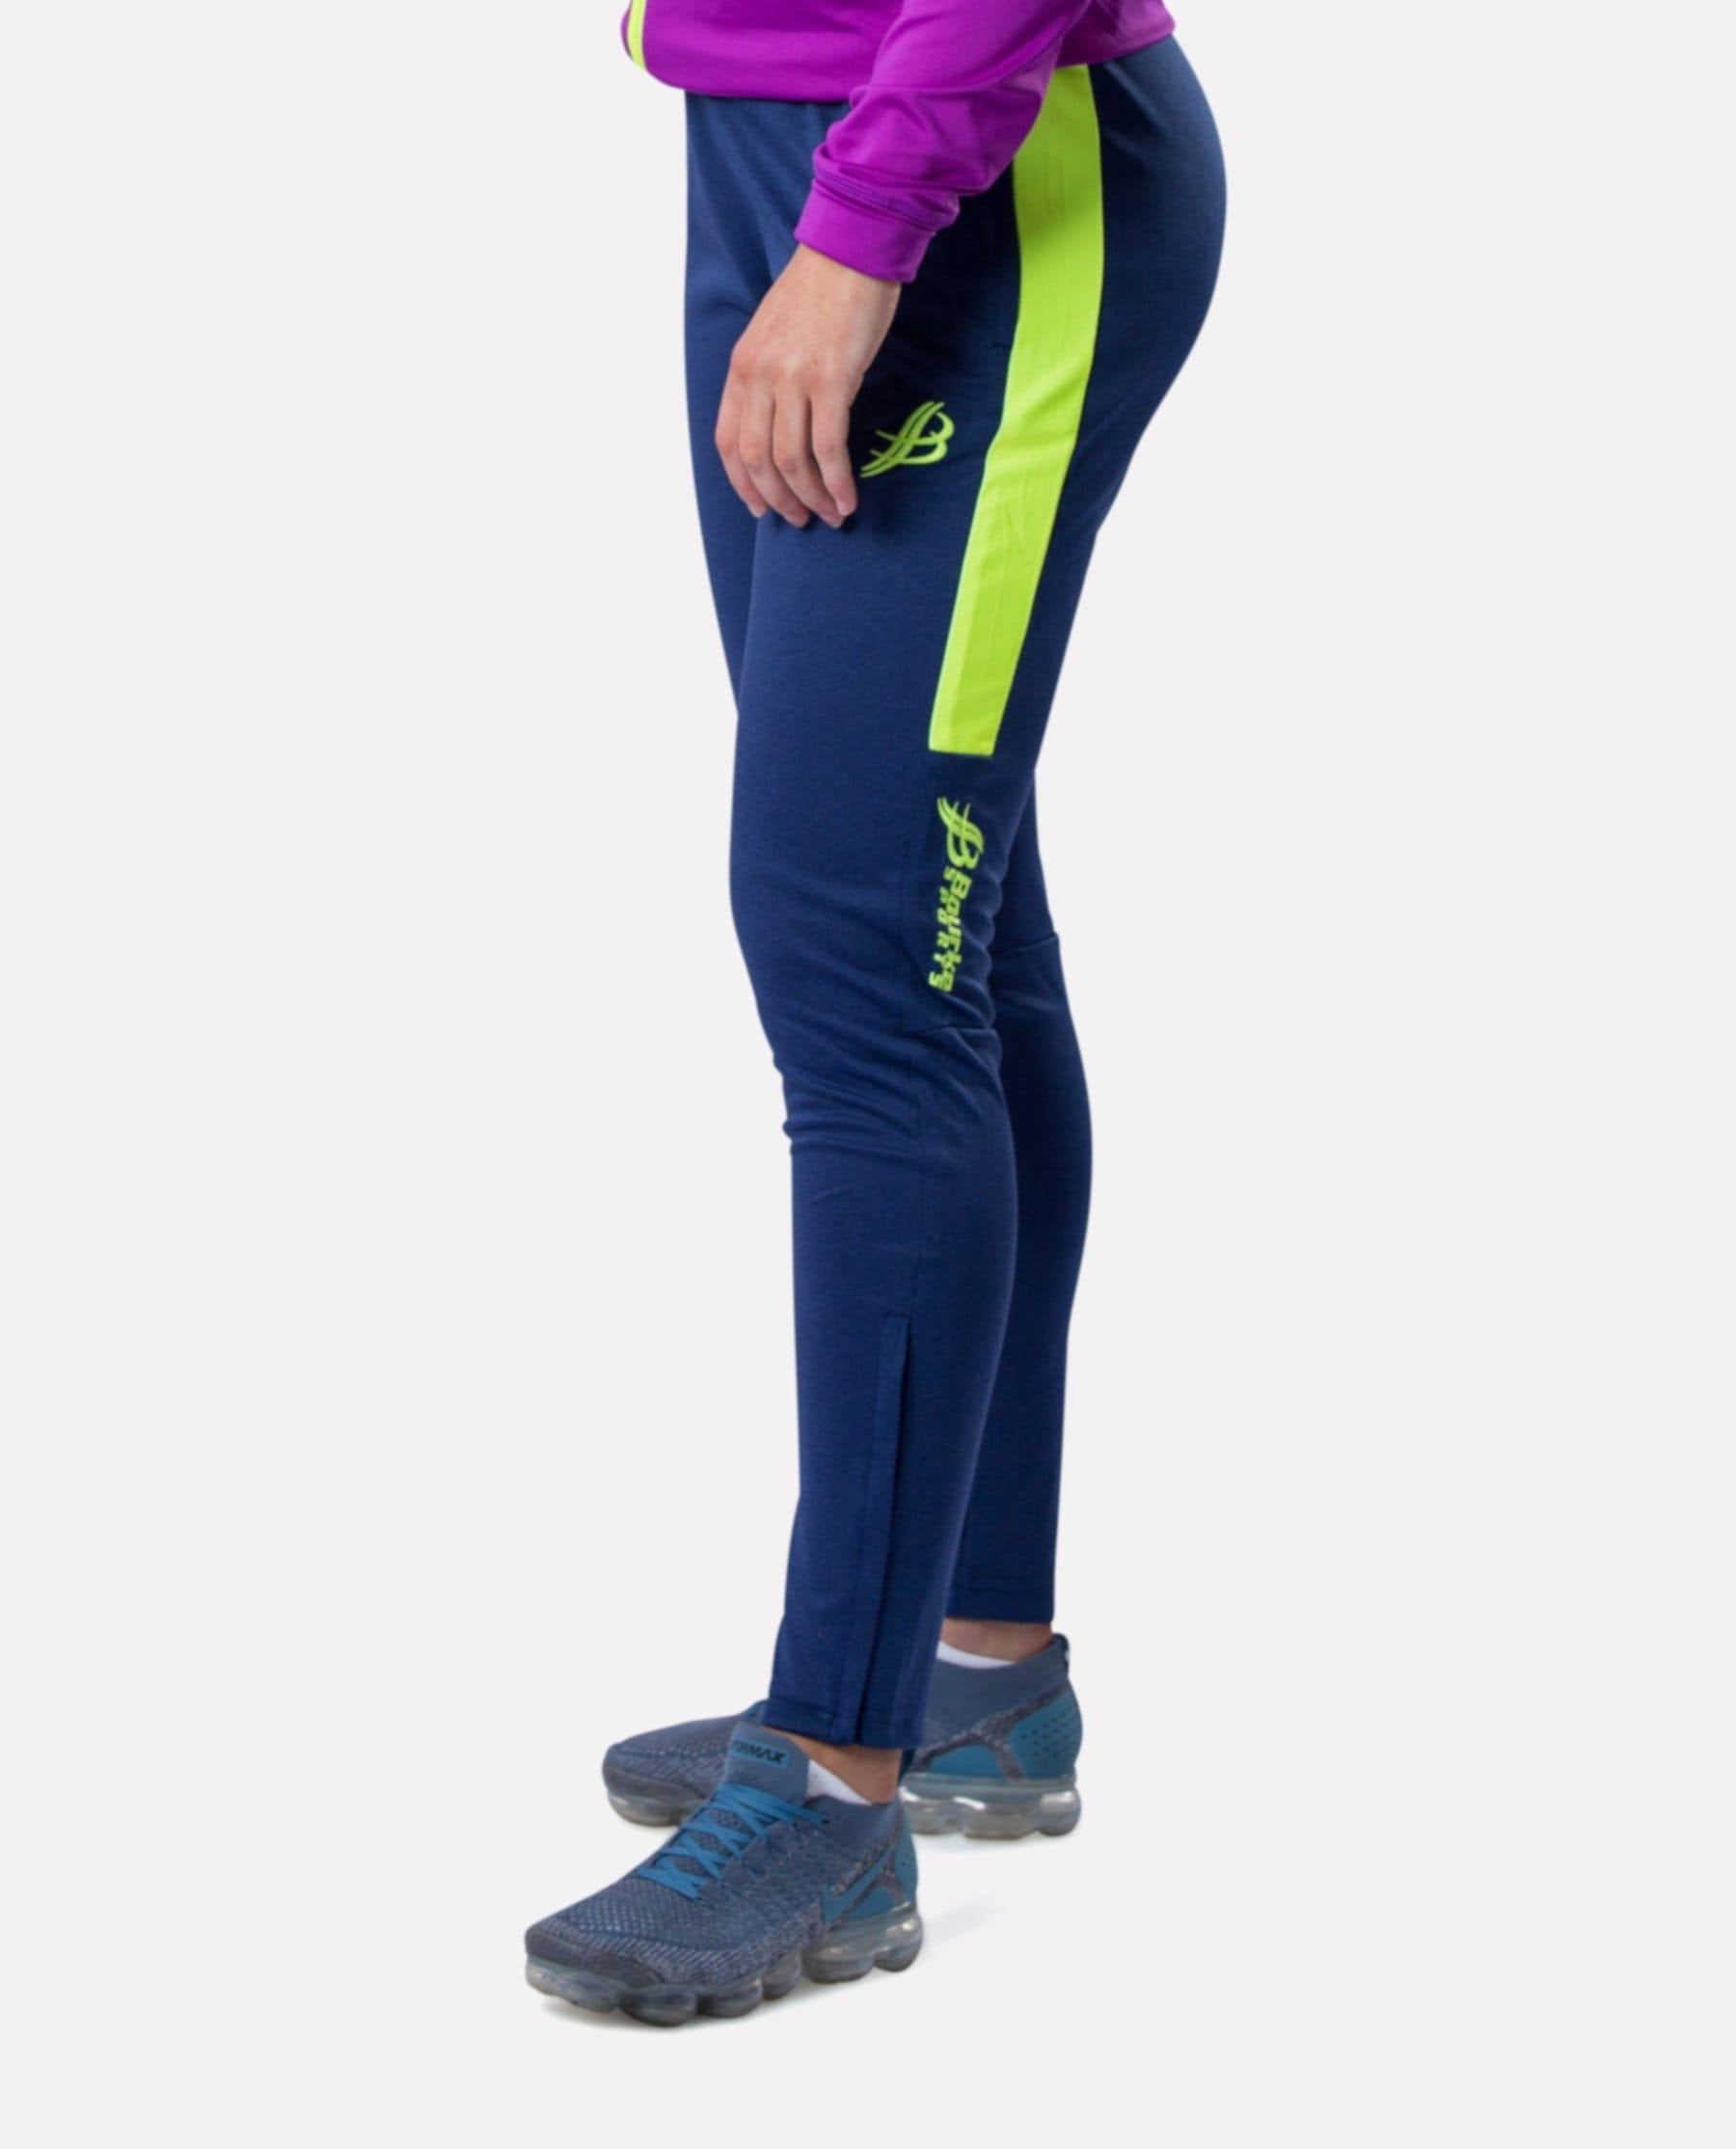 ALPHA Kids Skinny Pants (Navy/Luminous) - Bourke Sports Limited